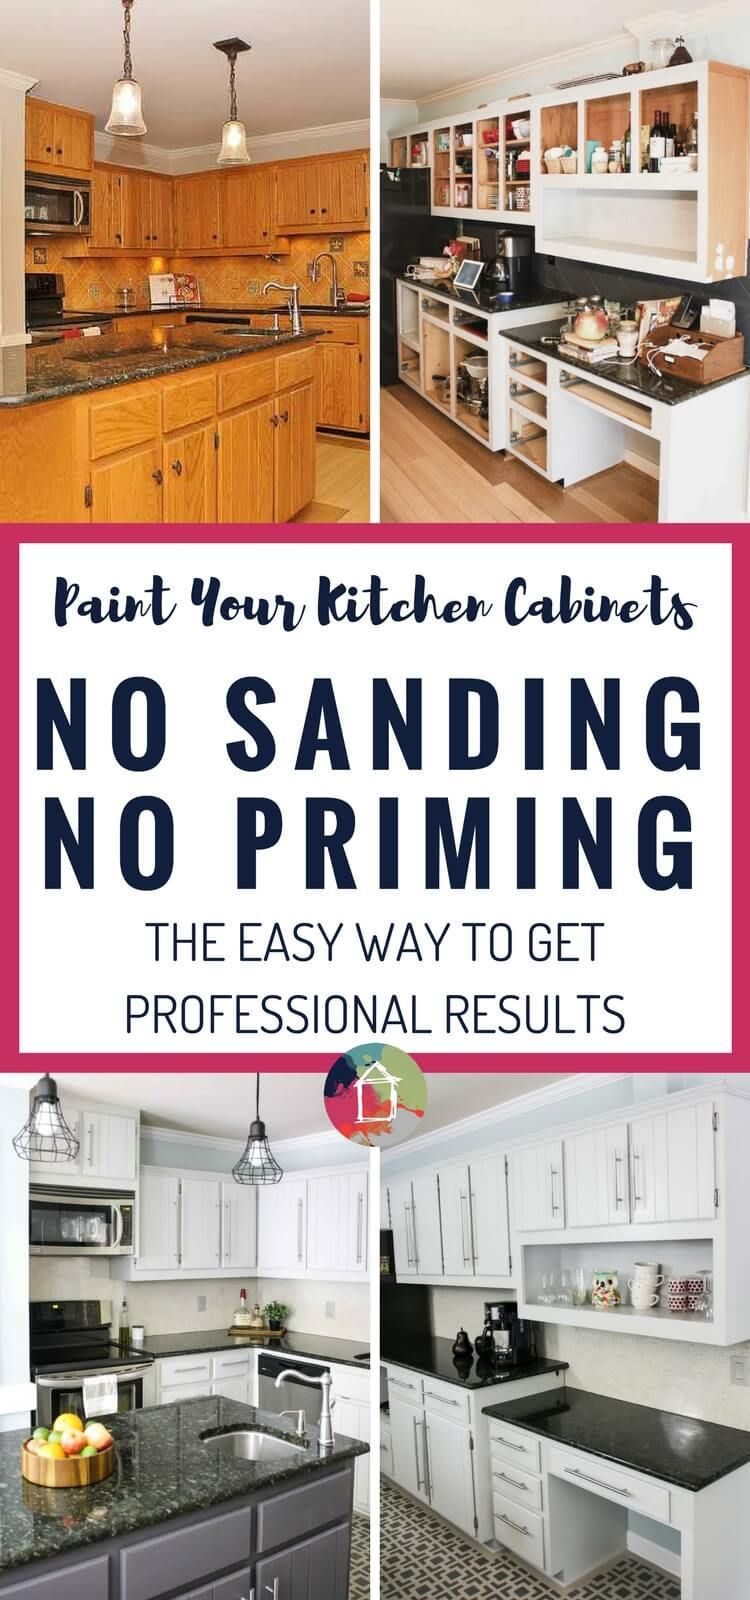 How To Paint Kitchen Cabinets Without Sanding Or Priming Step By Step Kitchen Cabinets Kitchen Diy Makeover Kitchen Cabinets Makeover